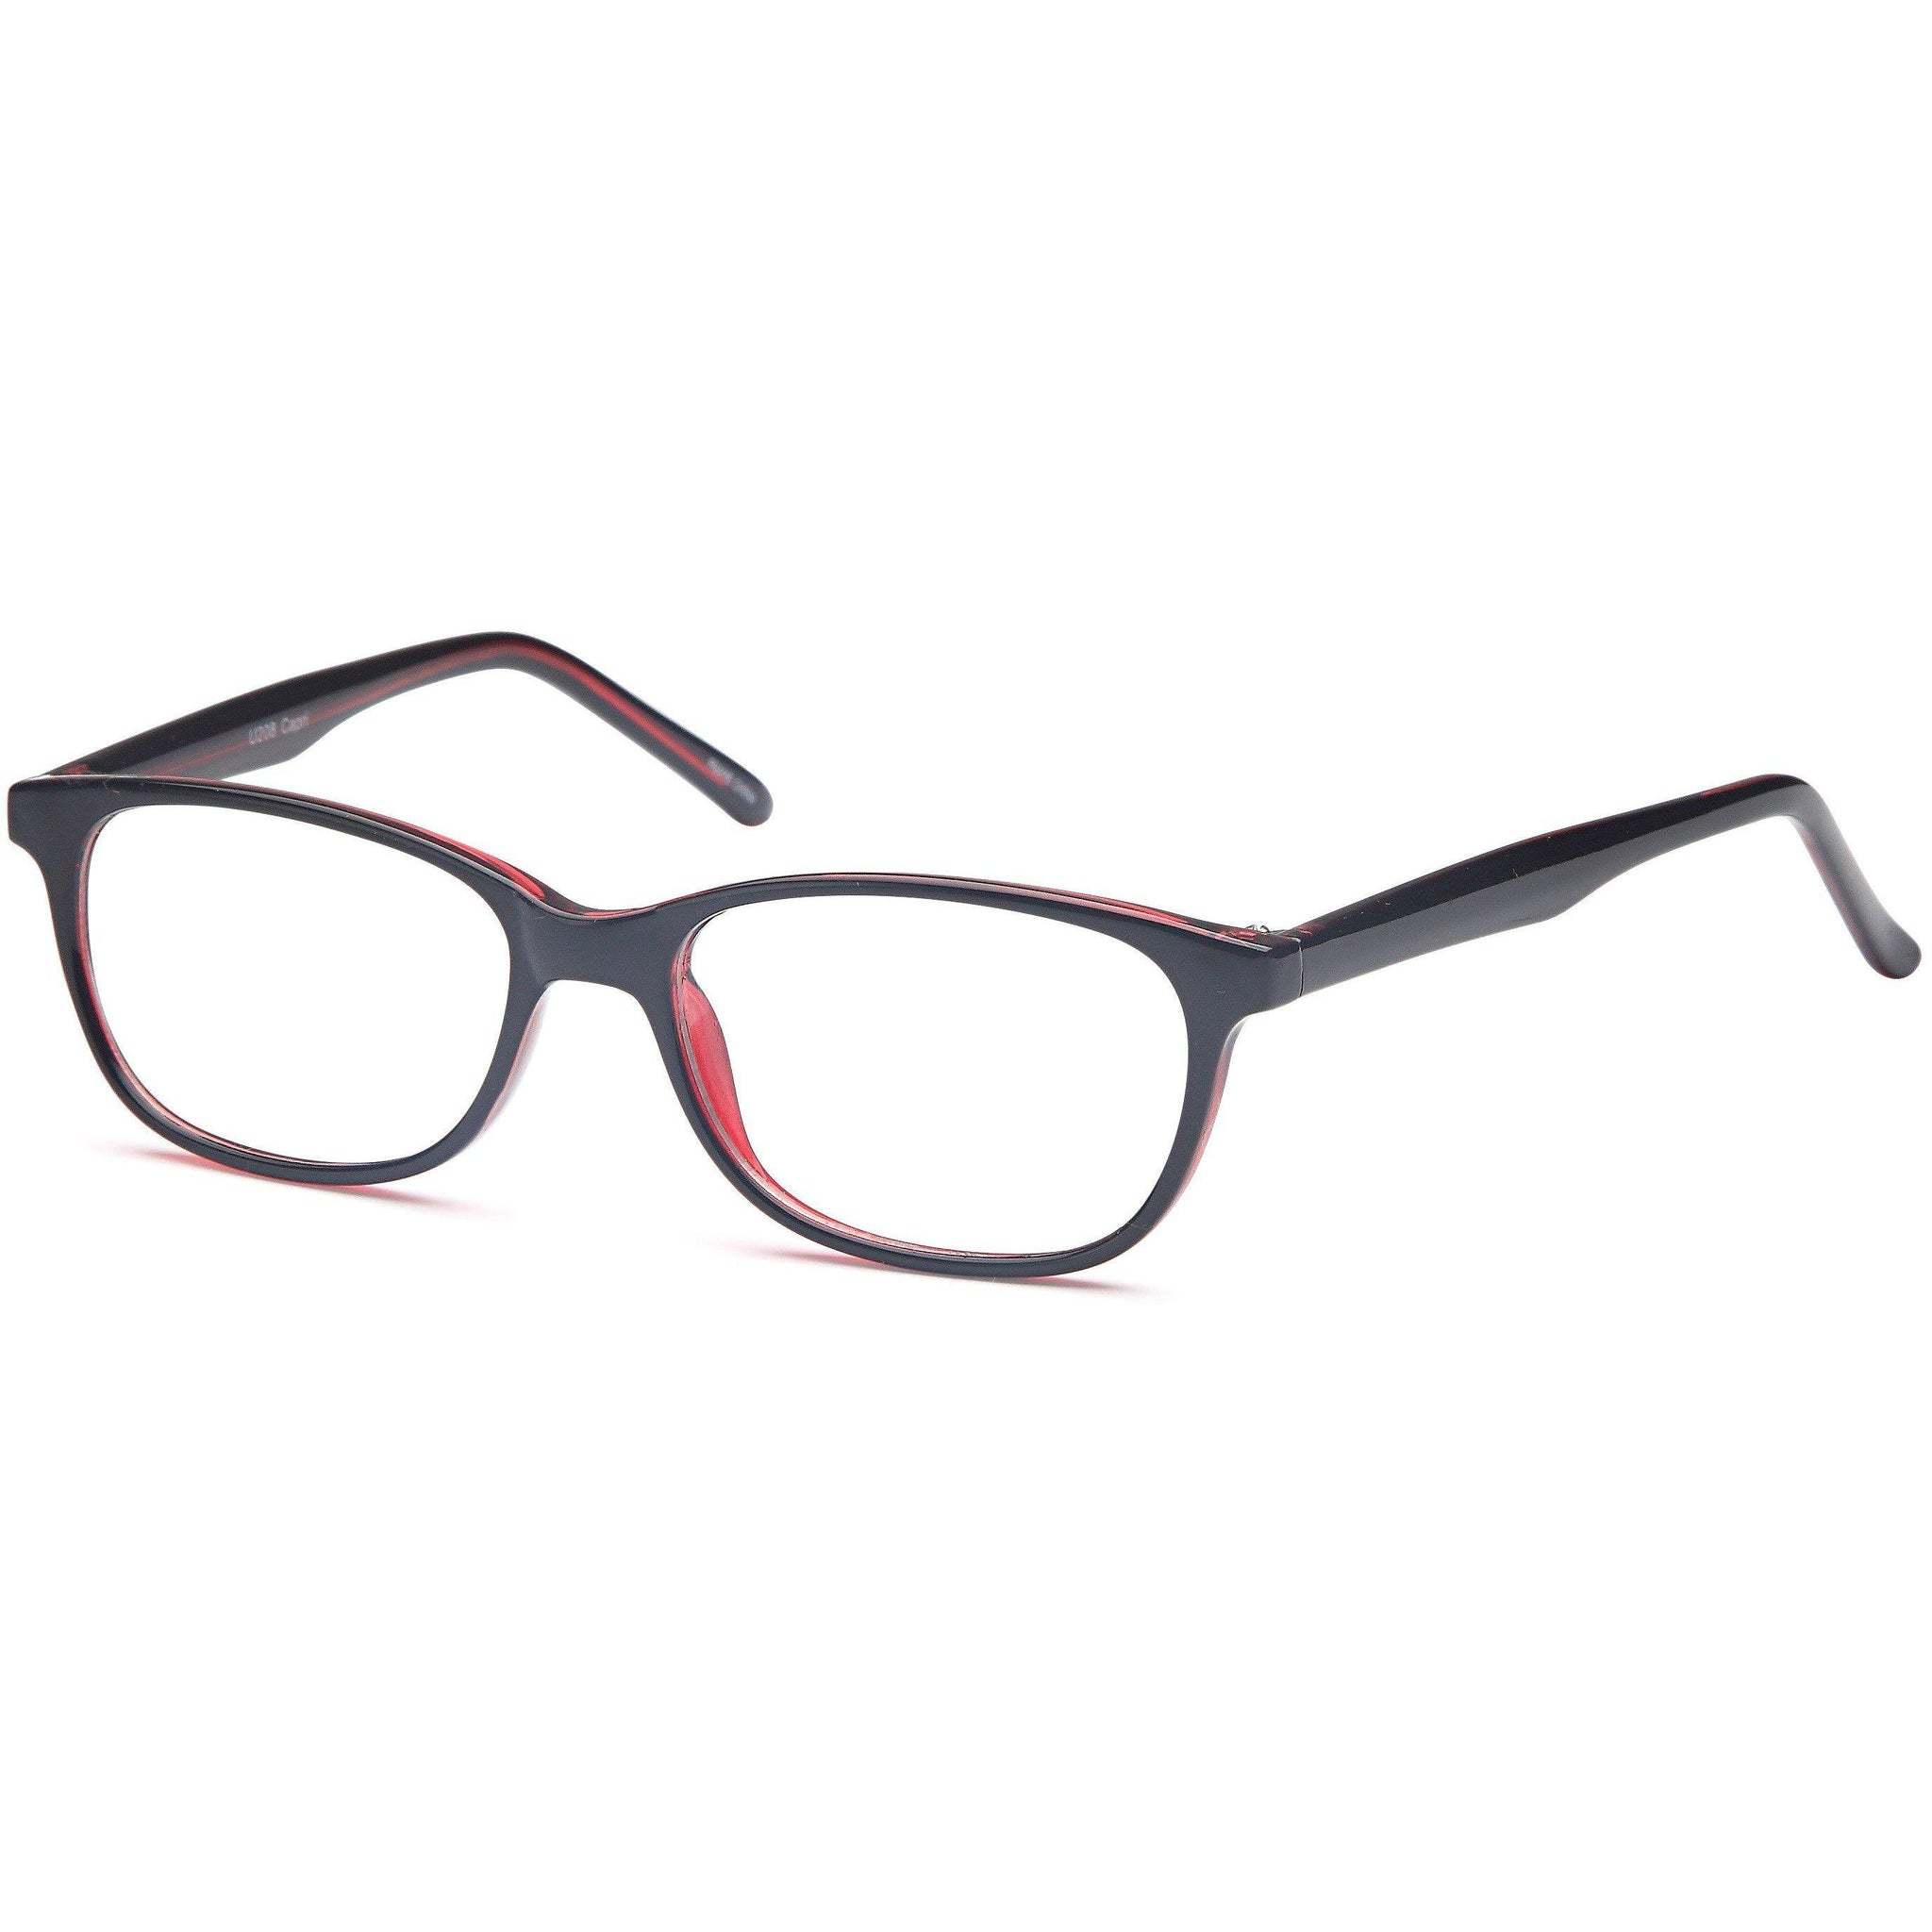 4U Prescription Glasses U 208 Optical Eyeglasses Frame - timetoshade